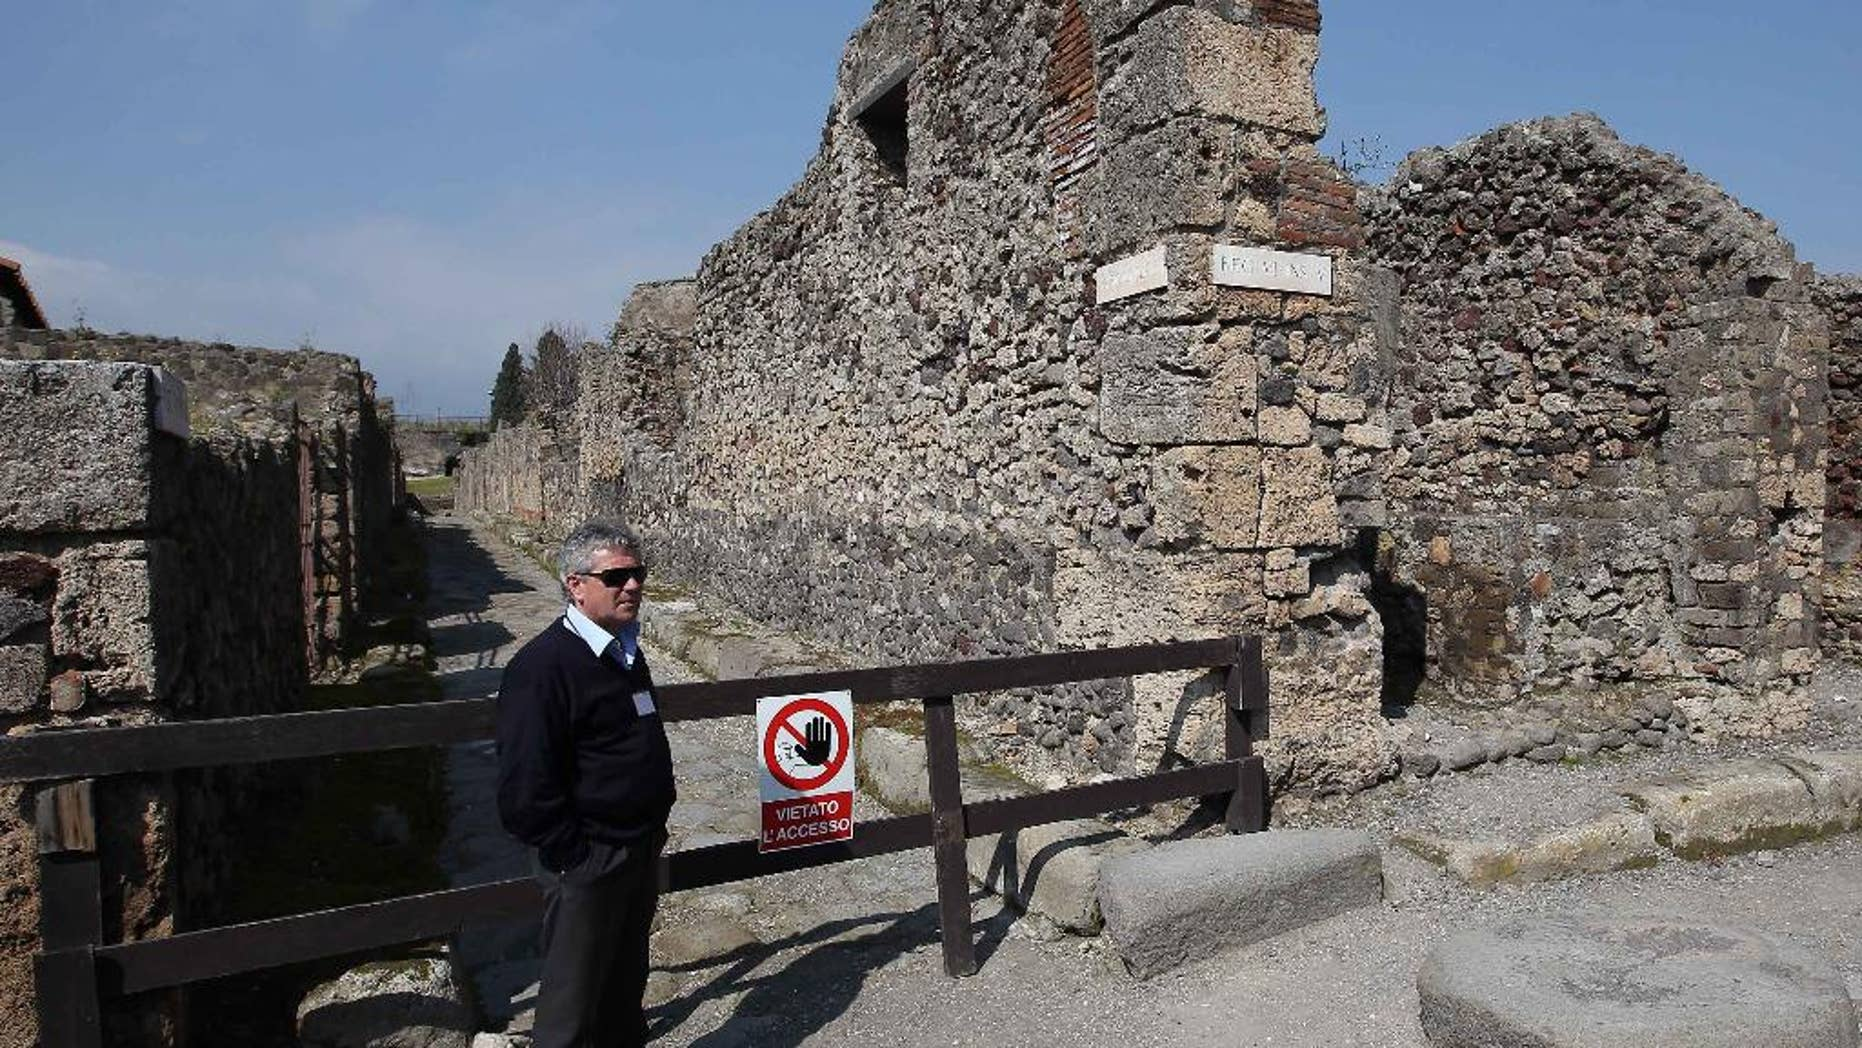 """A man stands by the area where thieves pried off a chunk of an ancient fresco of the Greek goddess Artemis from the walls of Pompeii, Italy, Tuesday, March 18, 2014. Pompeii's archaeological authorities said Tuesday the theft occurred on March 12 in the """"Home of Neptune,"""" in an area of Pompeii's sprawling excavation site not currently open to the public. The thieves used a metal object to scrape off the upper corner of the fresco, making off with a faded, 20-centimeter image of Artemis, the Pompeii authorities said in a statement. It's the latest setback for the popular tourist site, which has seen several walls collapse in recent months due to heavy rains. Similar collapses in recent years have prompted an infusion of EU funds. (AP Photo/Marco Cantile, Lapresse)"""